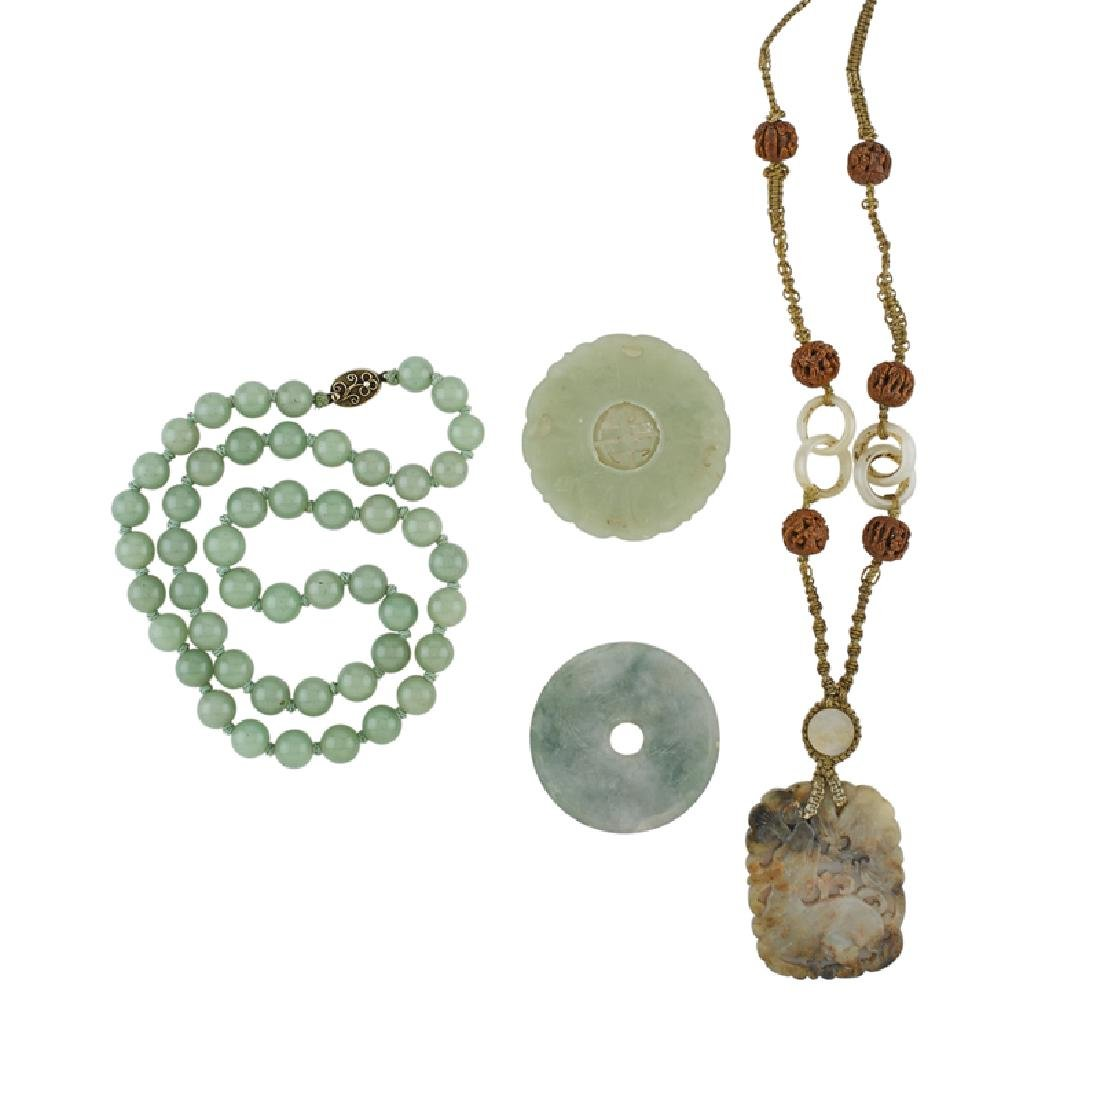 GROUP OF JADE JEWELRY